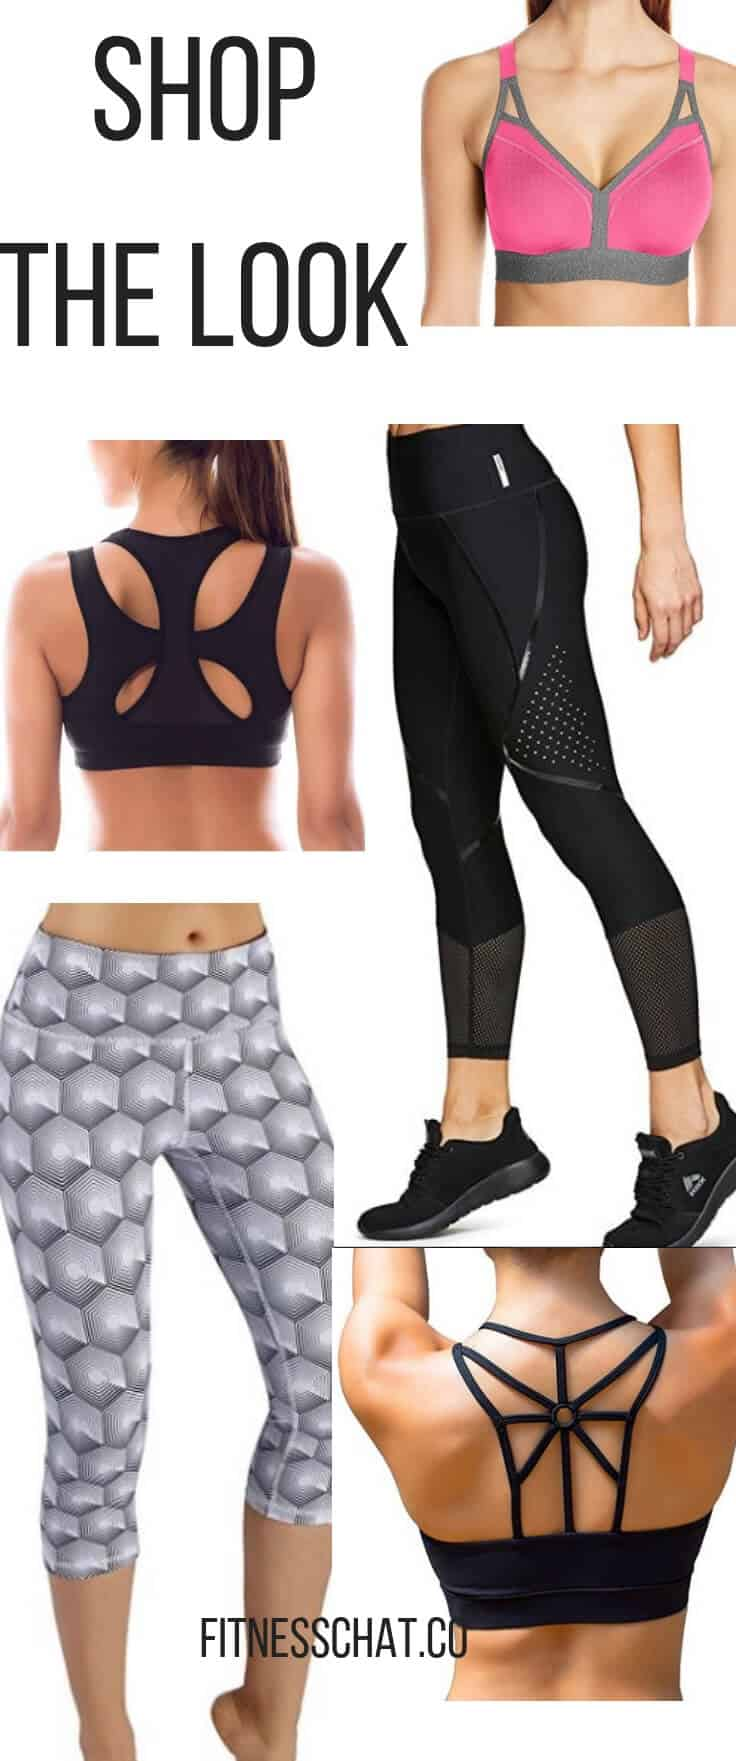 Buy cute workout clothes, workout outfiits and yoga pants from Amazon.